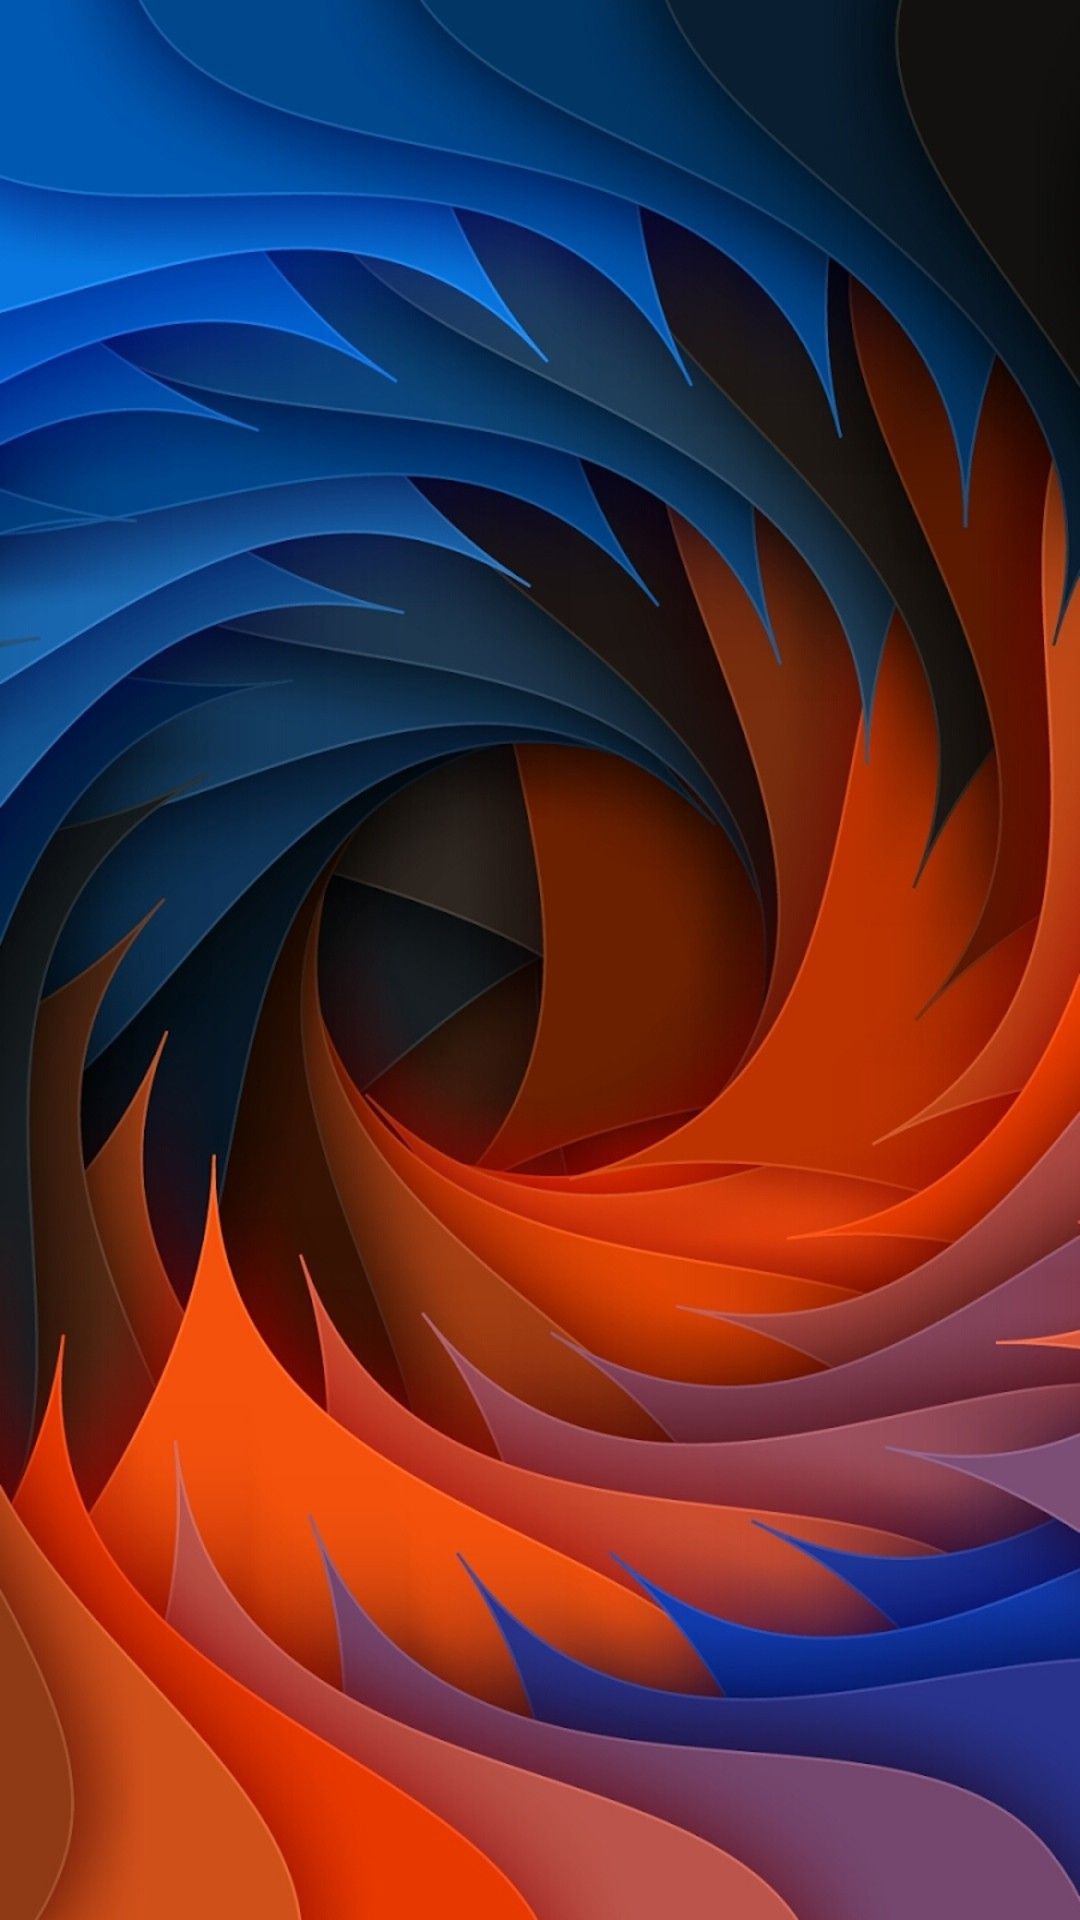 Colorful Swirl Abstract Wallpaper Abstract iphone